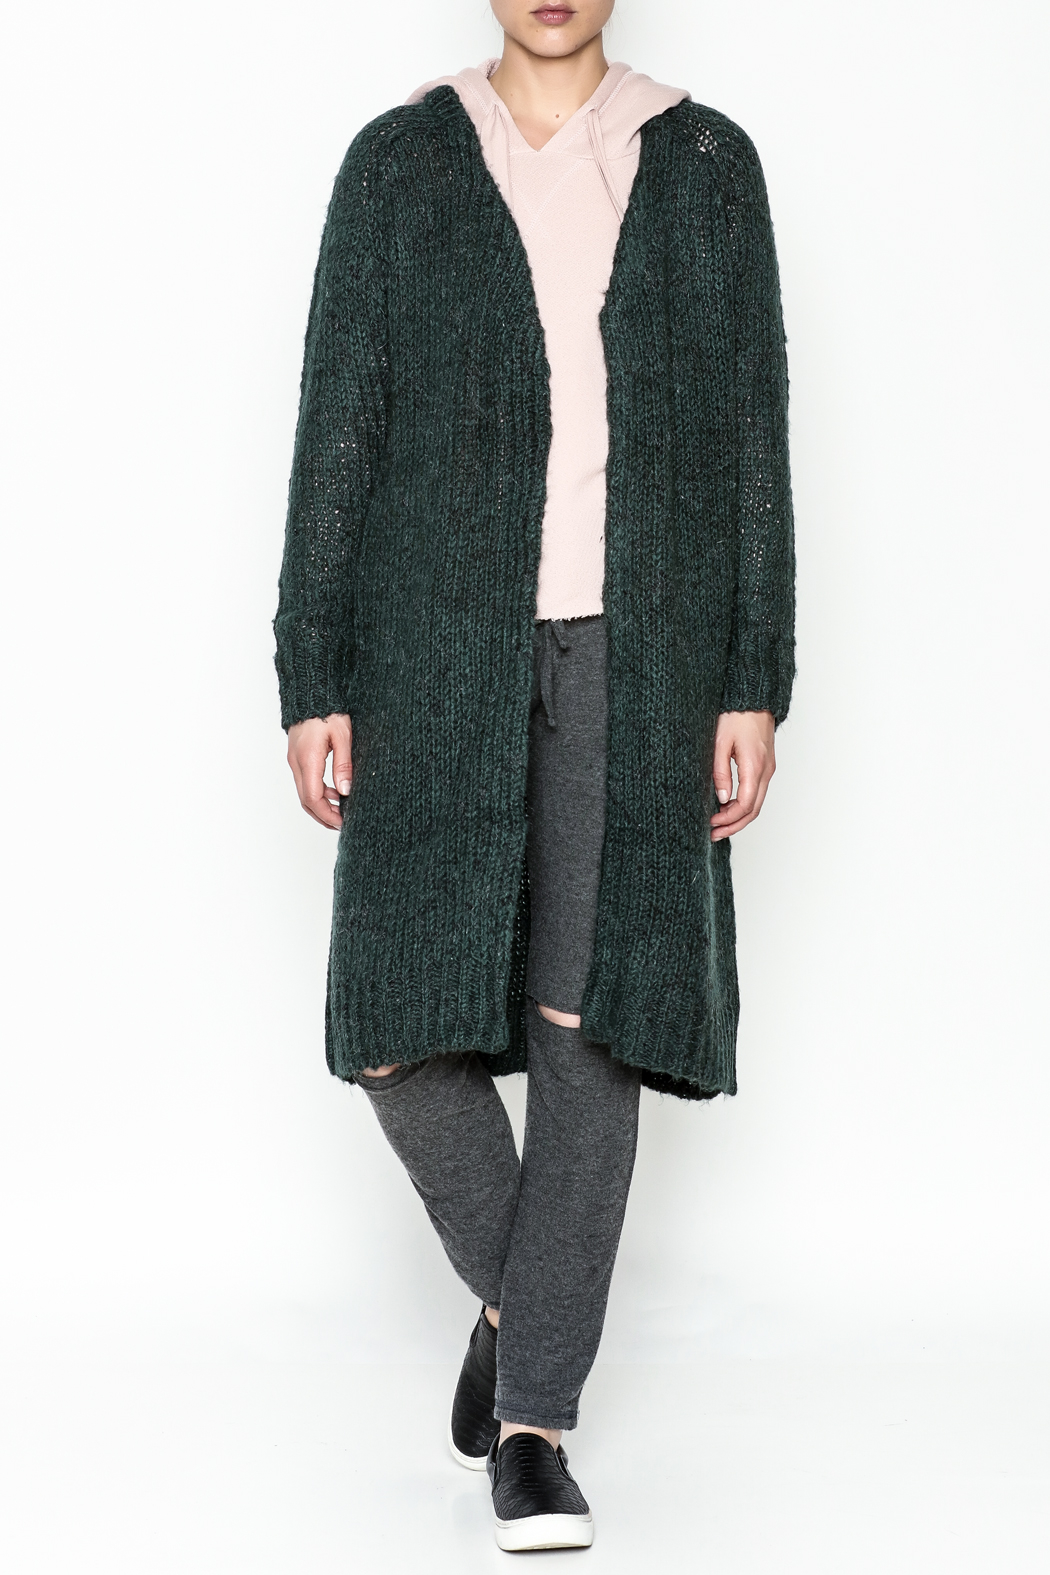 Noisy May Long Green Cardigan from New York City by Dor L'Dor ...